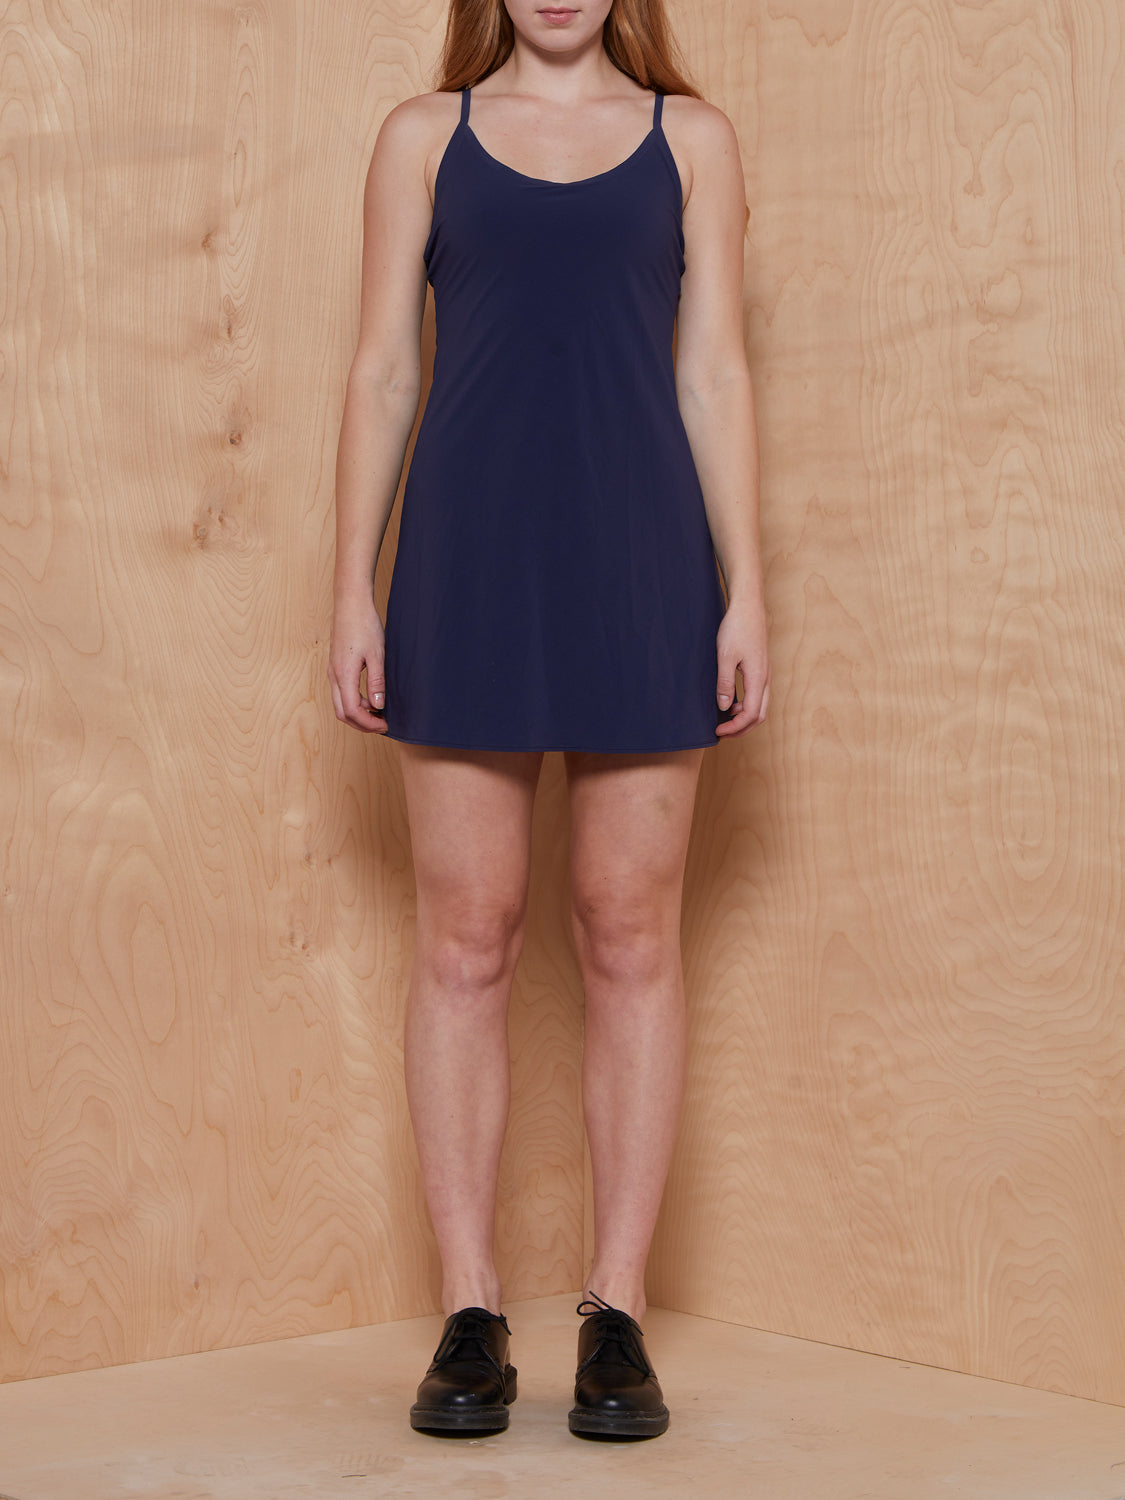 Outdoor Voices Navy Exercise Dress